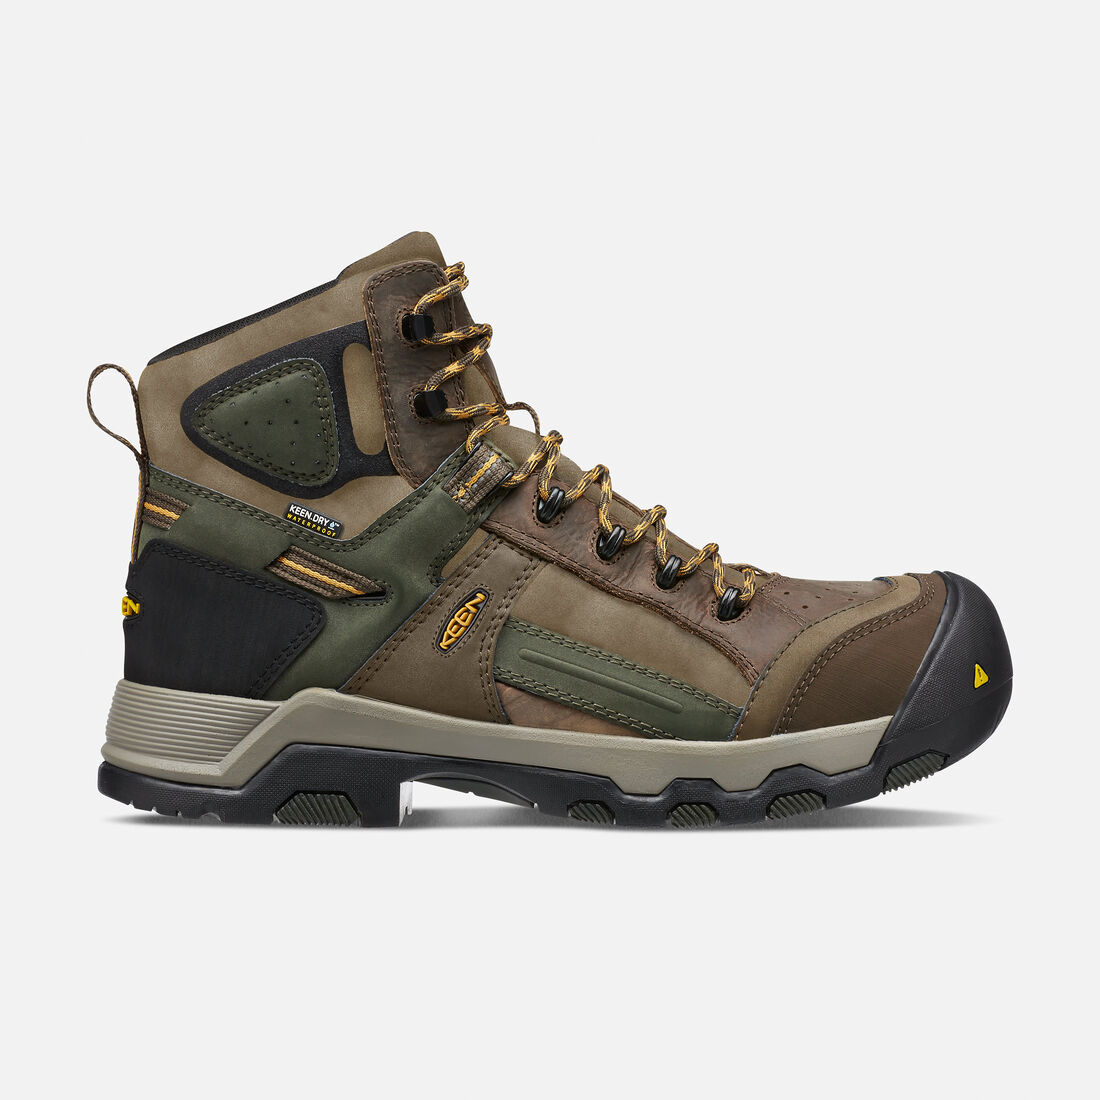 Men's DAVENPORT AL Waterproof Mid (Composite Toe) in Shitake/Forest Night - large view.